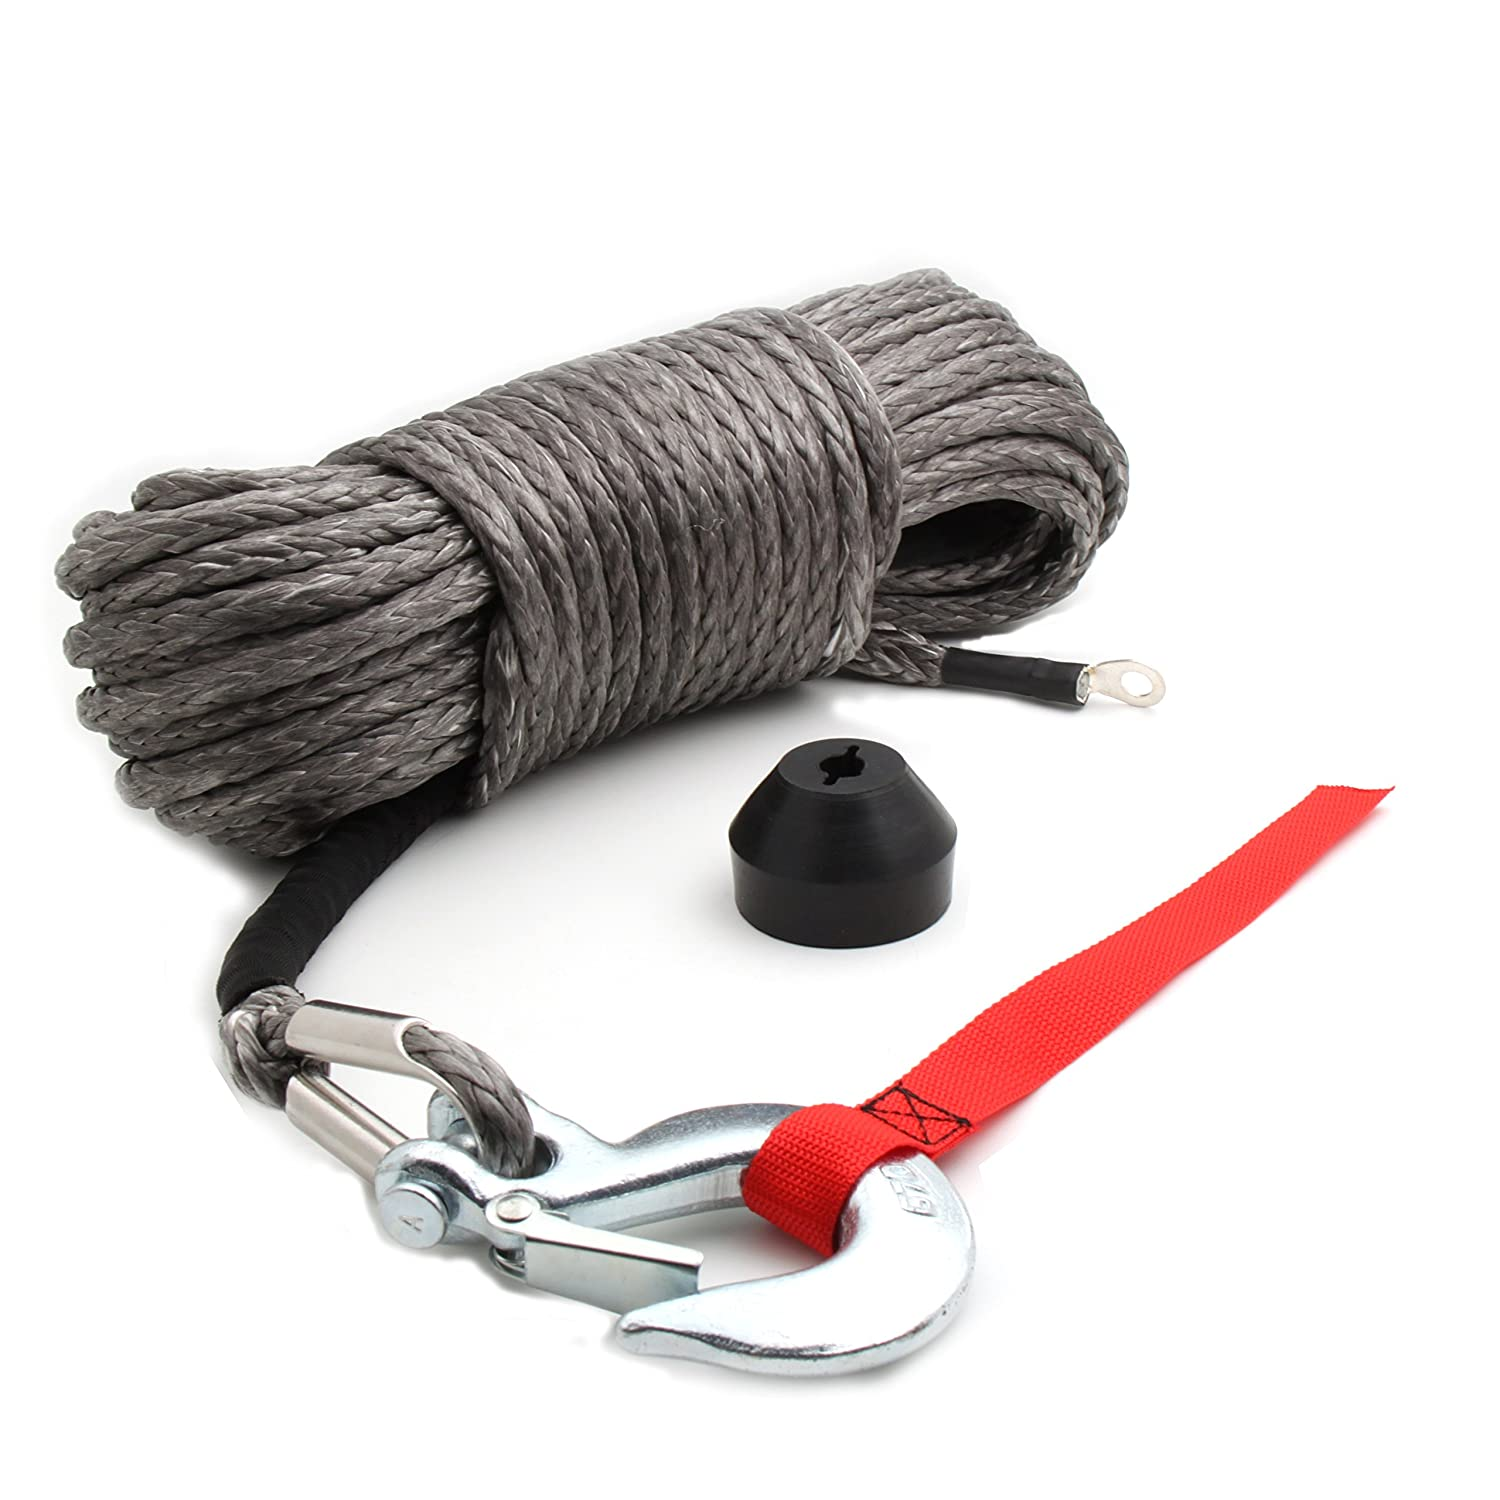 "Synthetic Winch Rope Kit, 50x3/16"" Rope w/Snap Hook and Rubber Stopper for 4x4/Off-road/ATV/Jeep/etc. Offroading Gear"